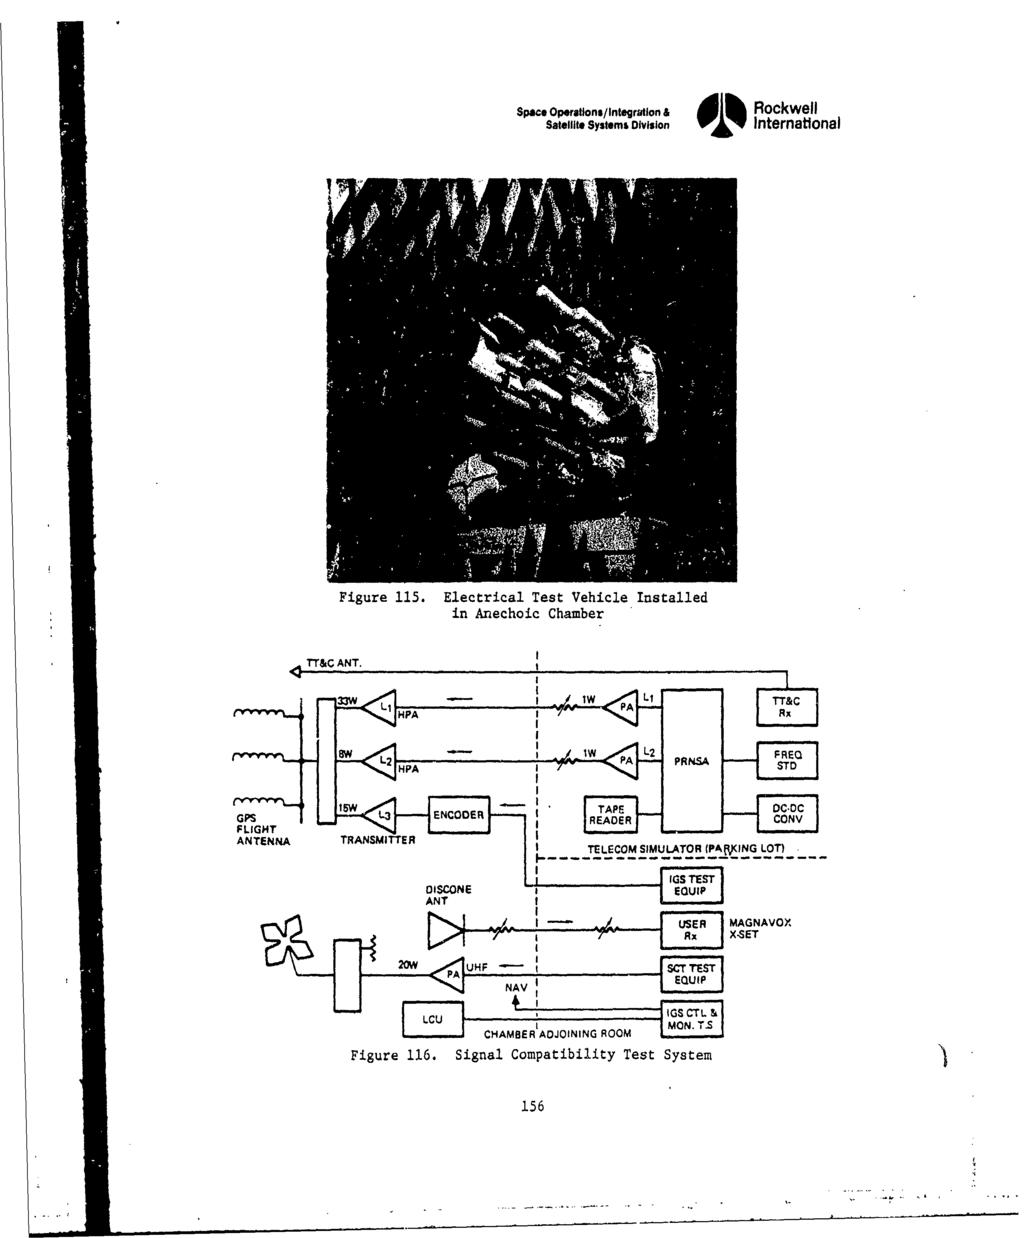 Gps Iigs Design Analysis Report Volume I Contract F C 0216 Cdrl Mg Zr Scu Wiring Diagram Space Operations Integration Satellite Systems Division D H Rockwell O International Figure 115